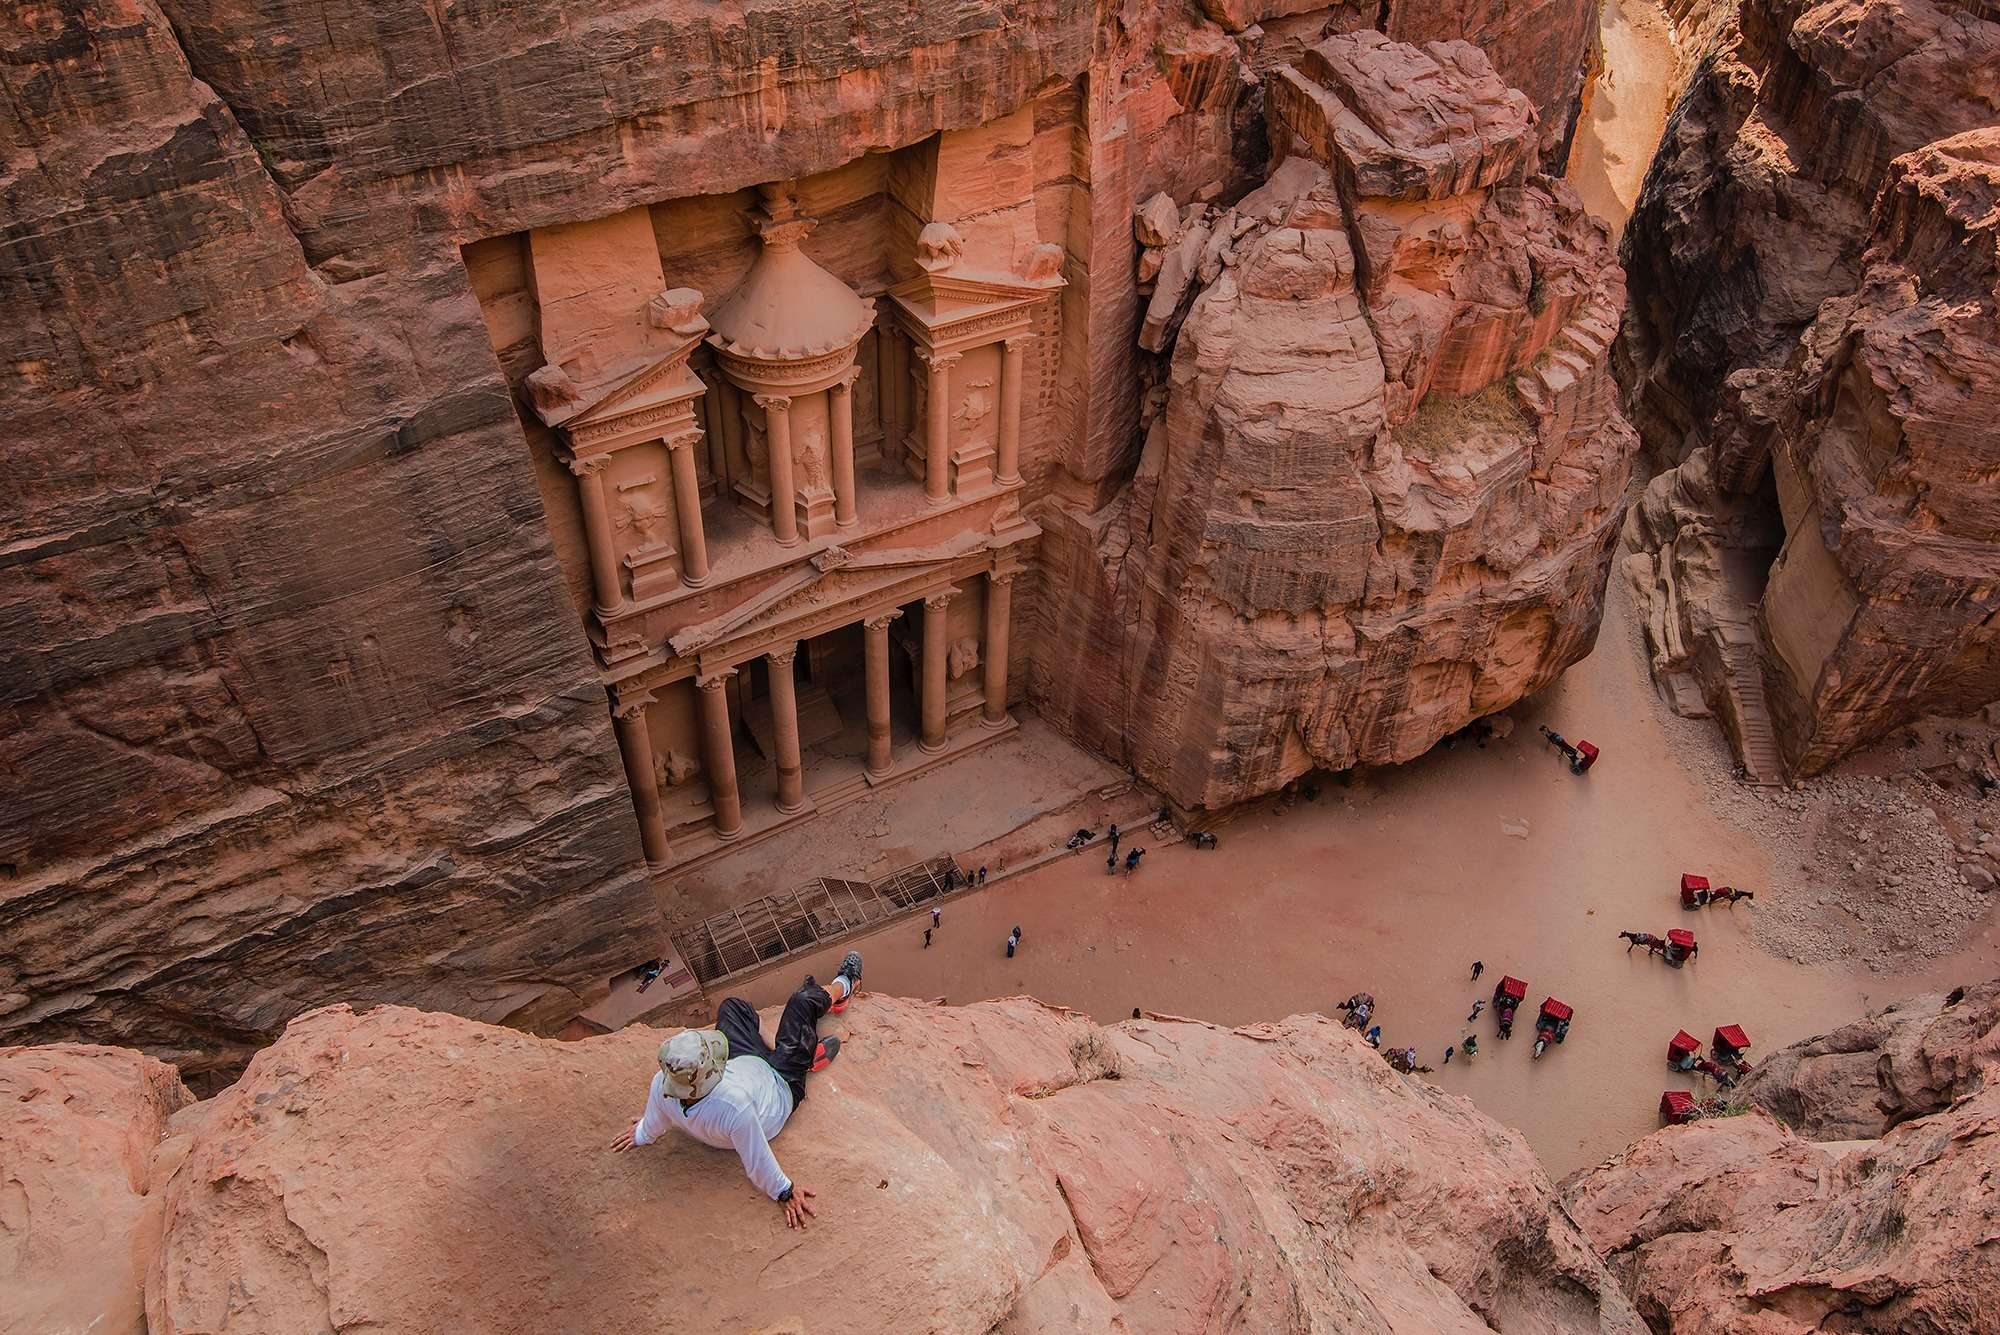 man in a white shirt sits on a rock looking down at a historical site during travel to Petra